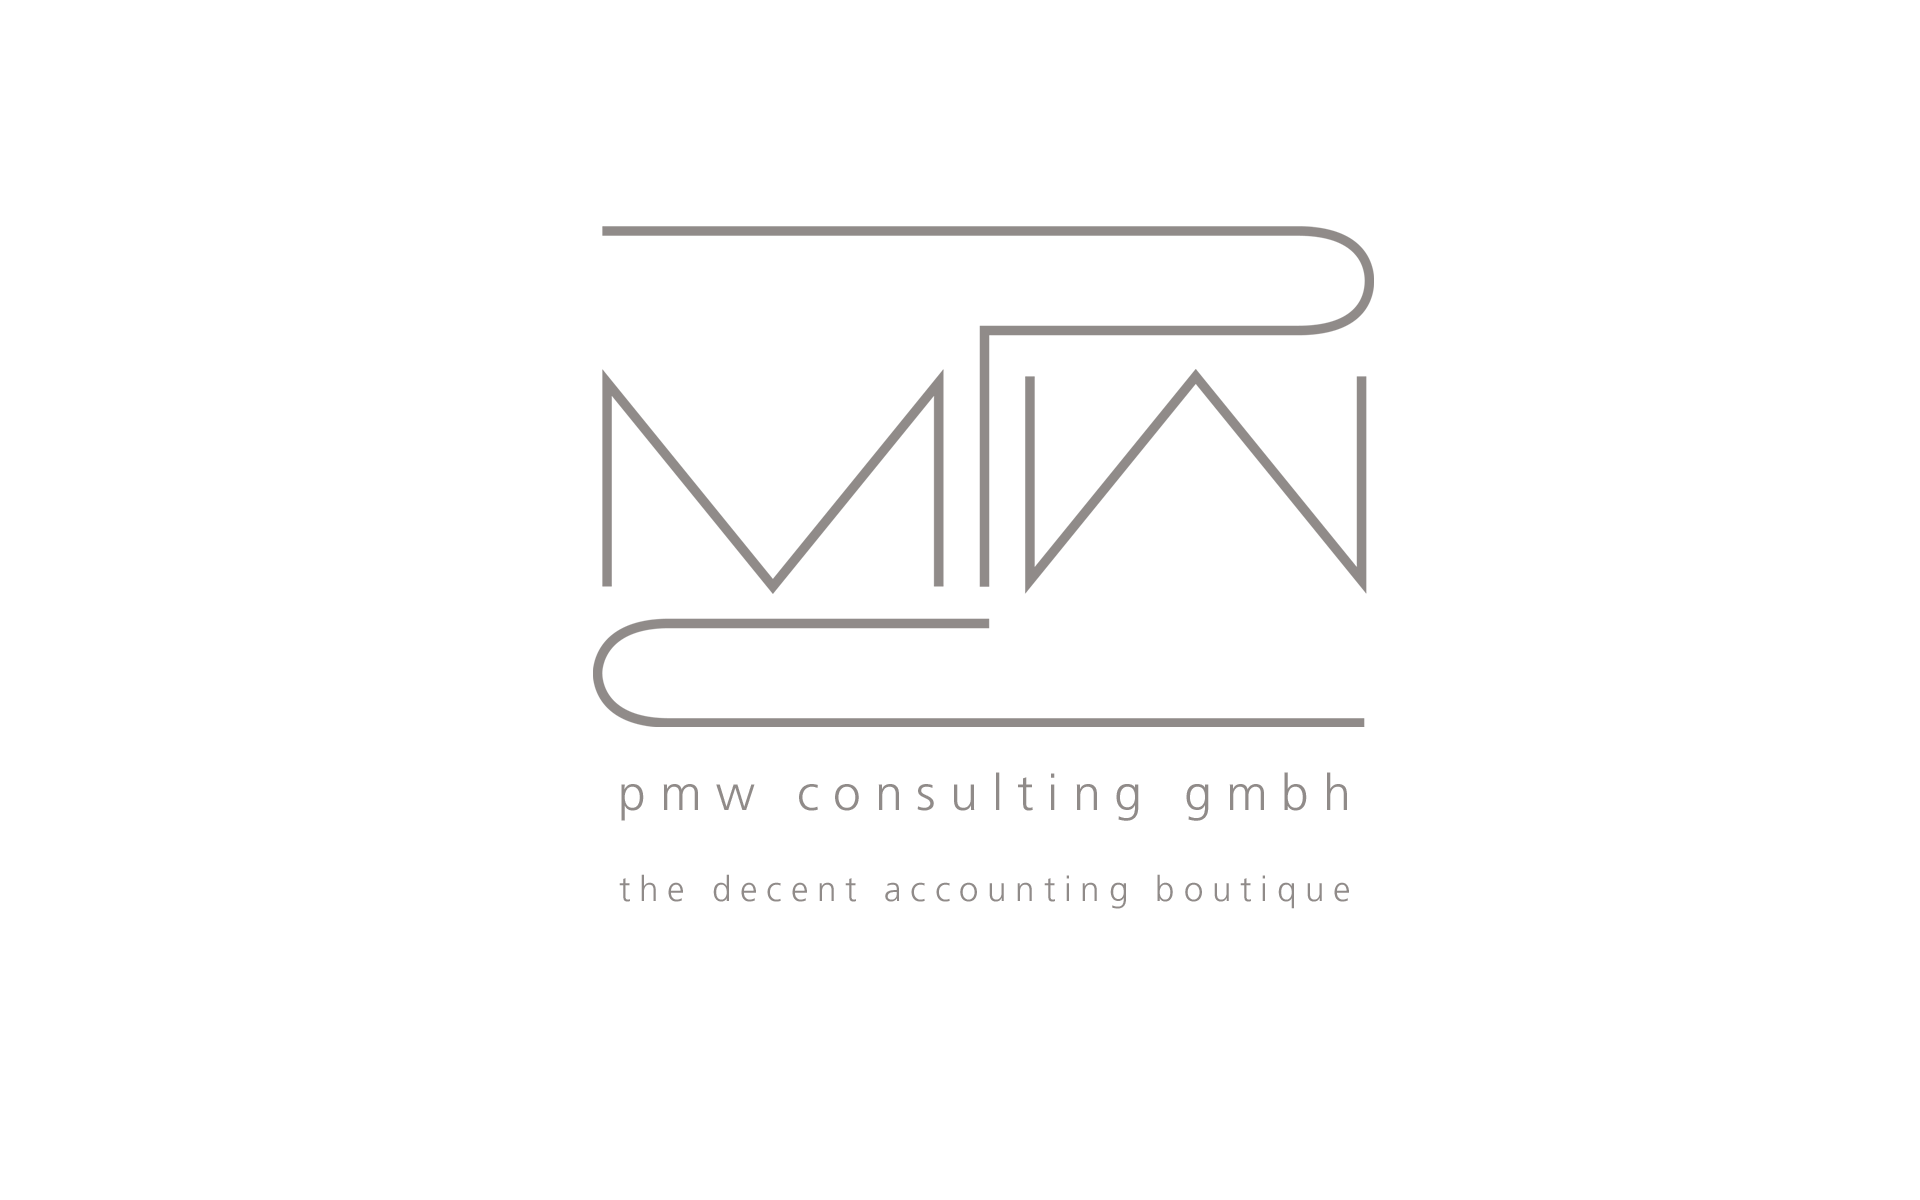 pmw consulting gmbh